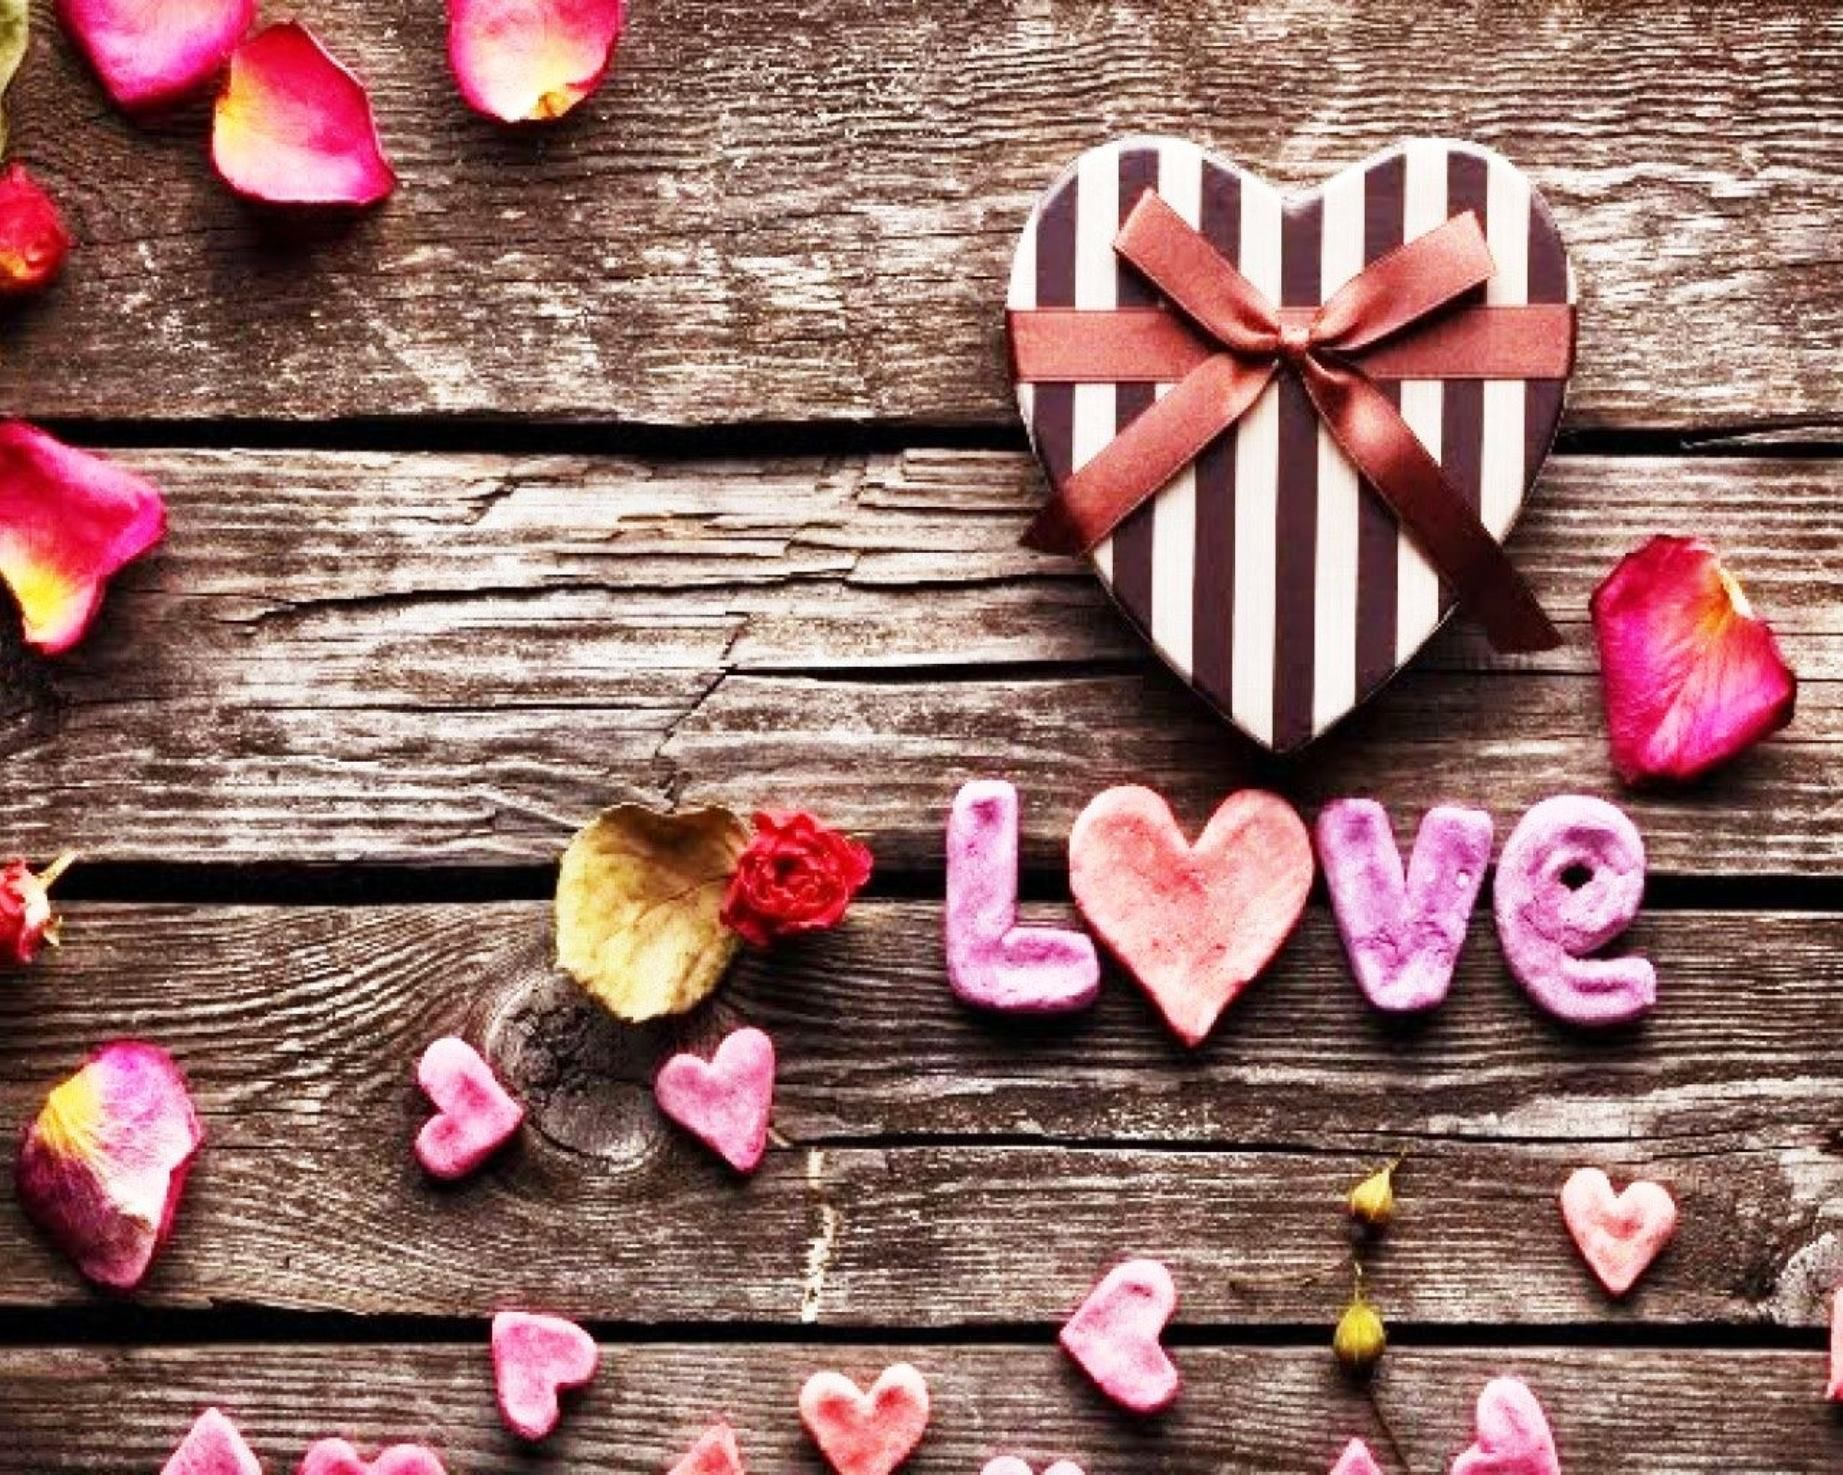 Cute Love Wallpaper Hd For Mobile Good Wallpapers Cute Love Hd For